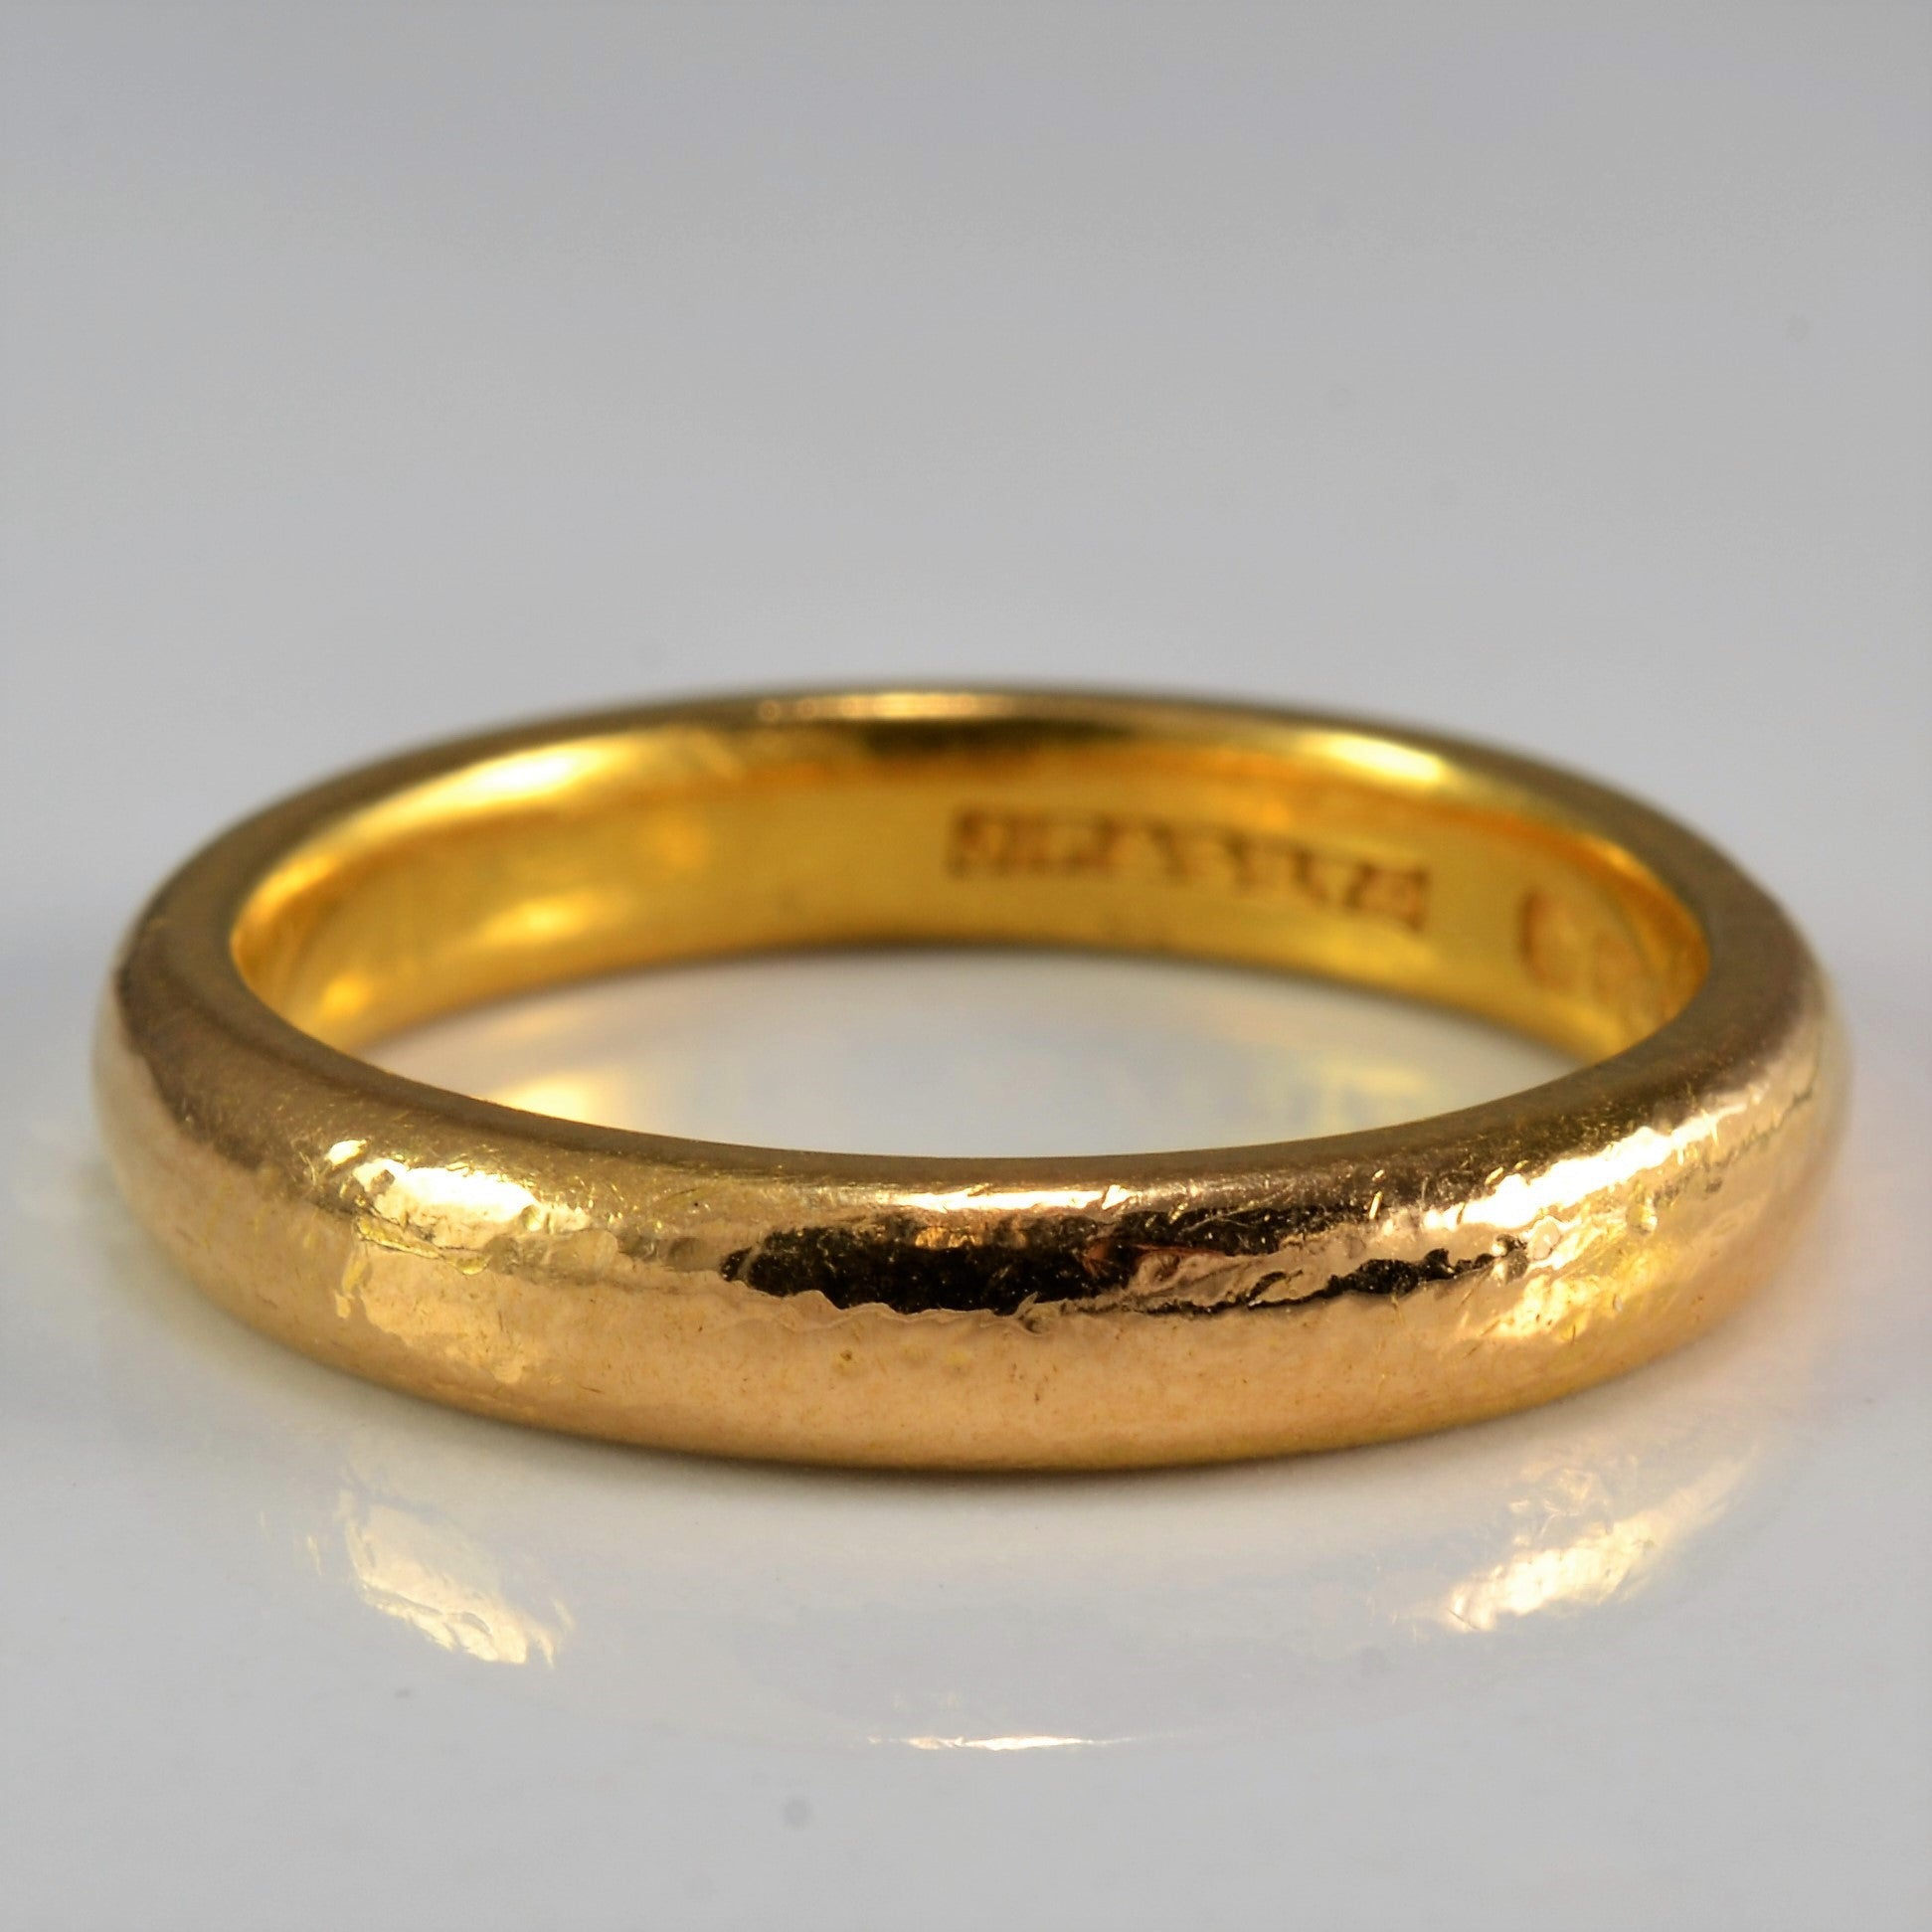 1890s Yellow Gold Wedding Band | SZ 5.5 |